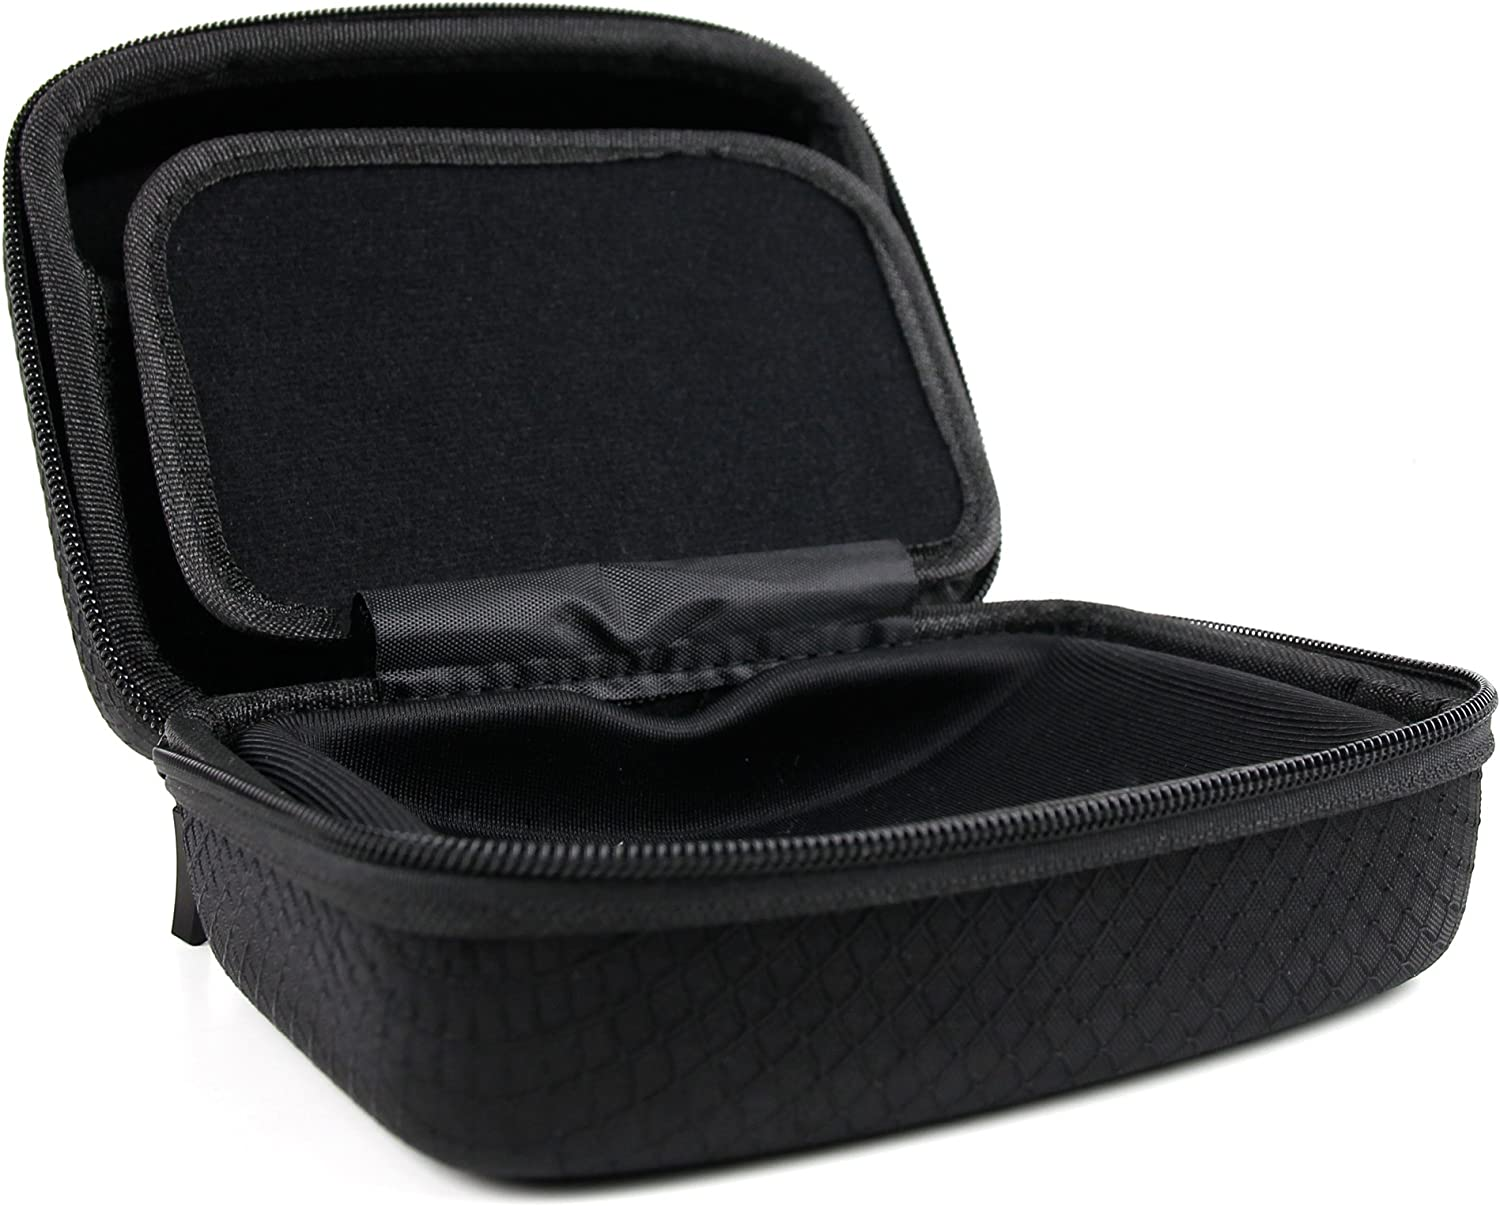 DURAGADGET Jet Black Hard EVA Carry Case Compatible with The REXING V1P